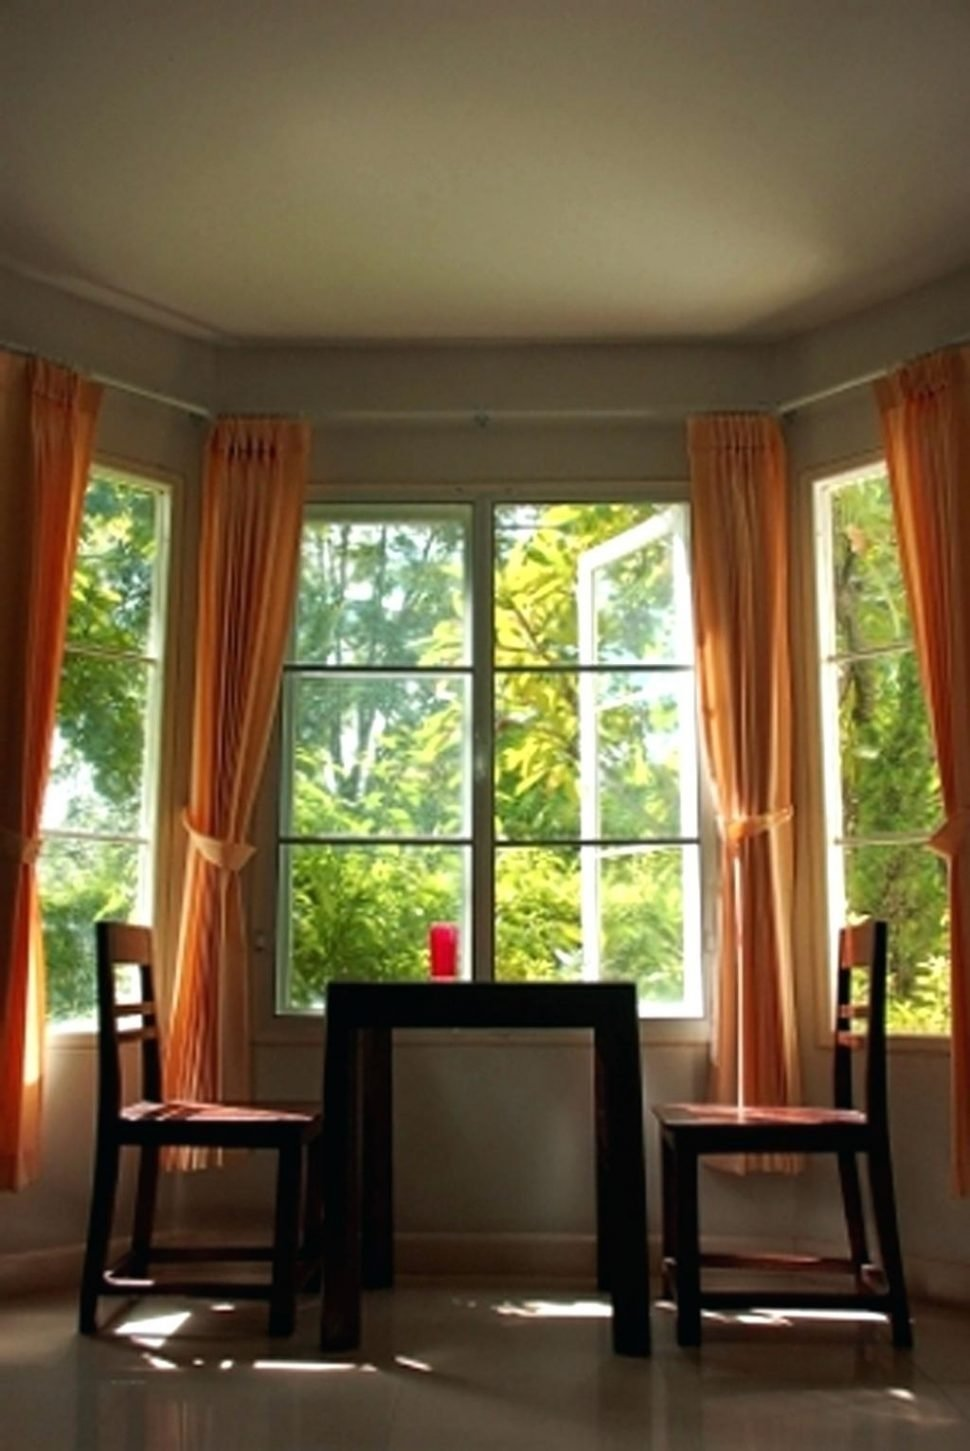 10 Wonderful Bay Window Treatment Ideas Pictures bedroom kitchen bay window curtains ideas blinds pictures living 2020